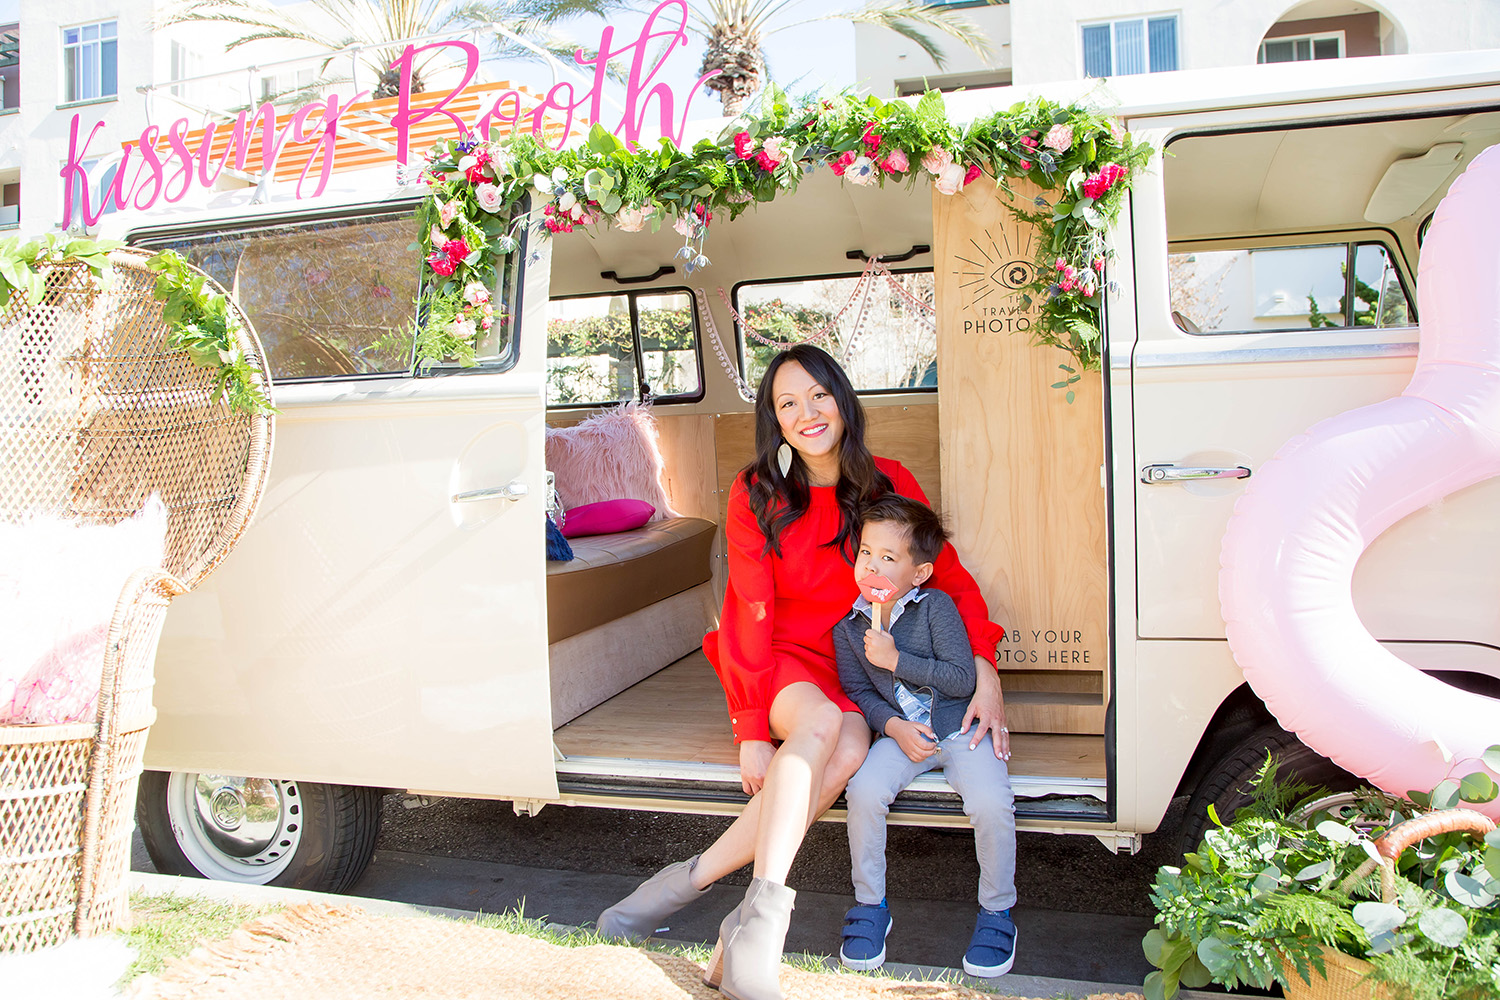 Kissing Booth Event | Amy Tangerine